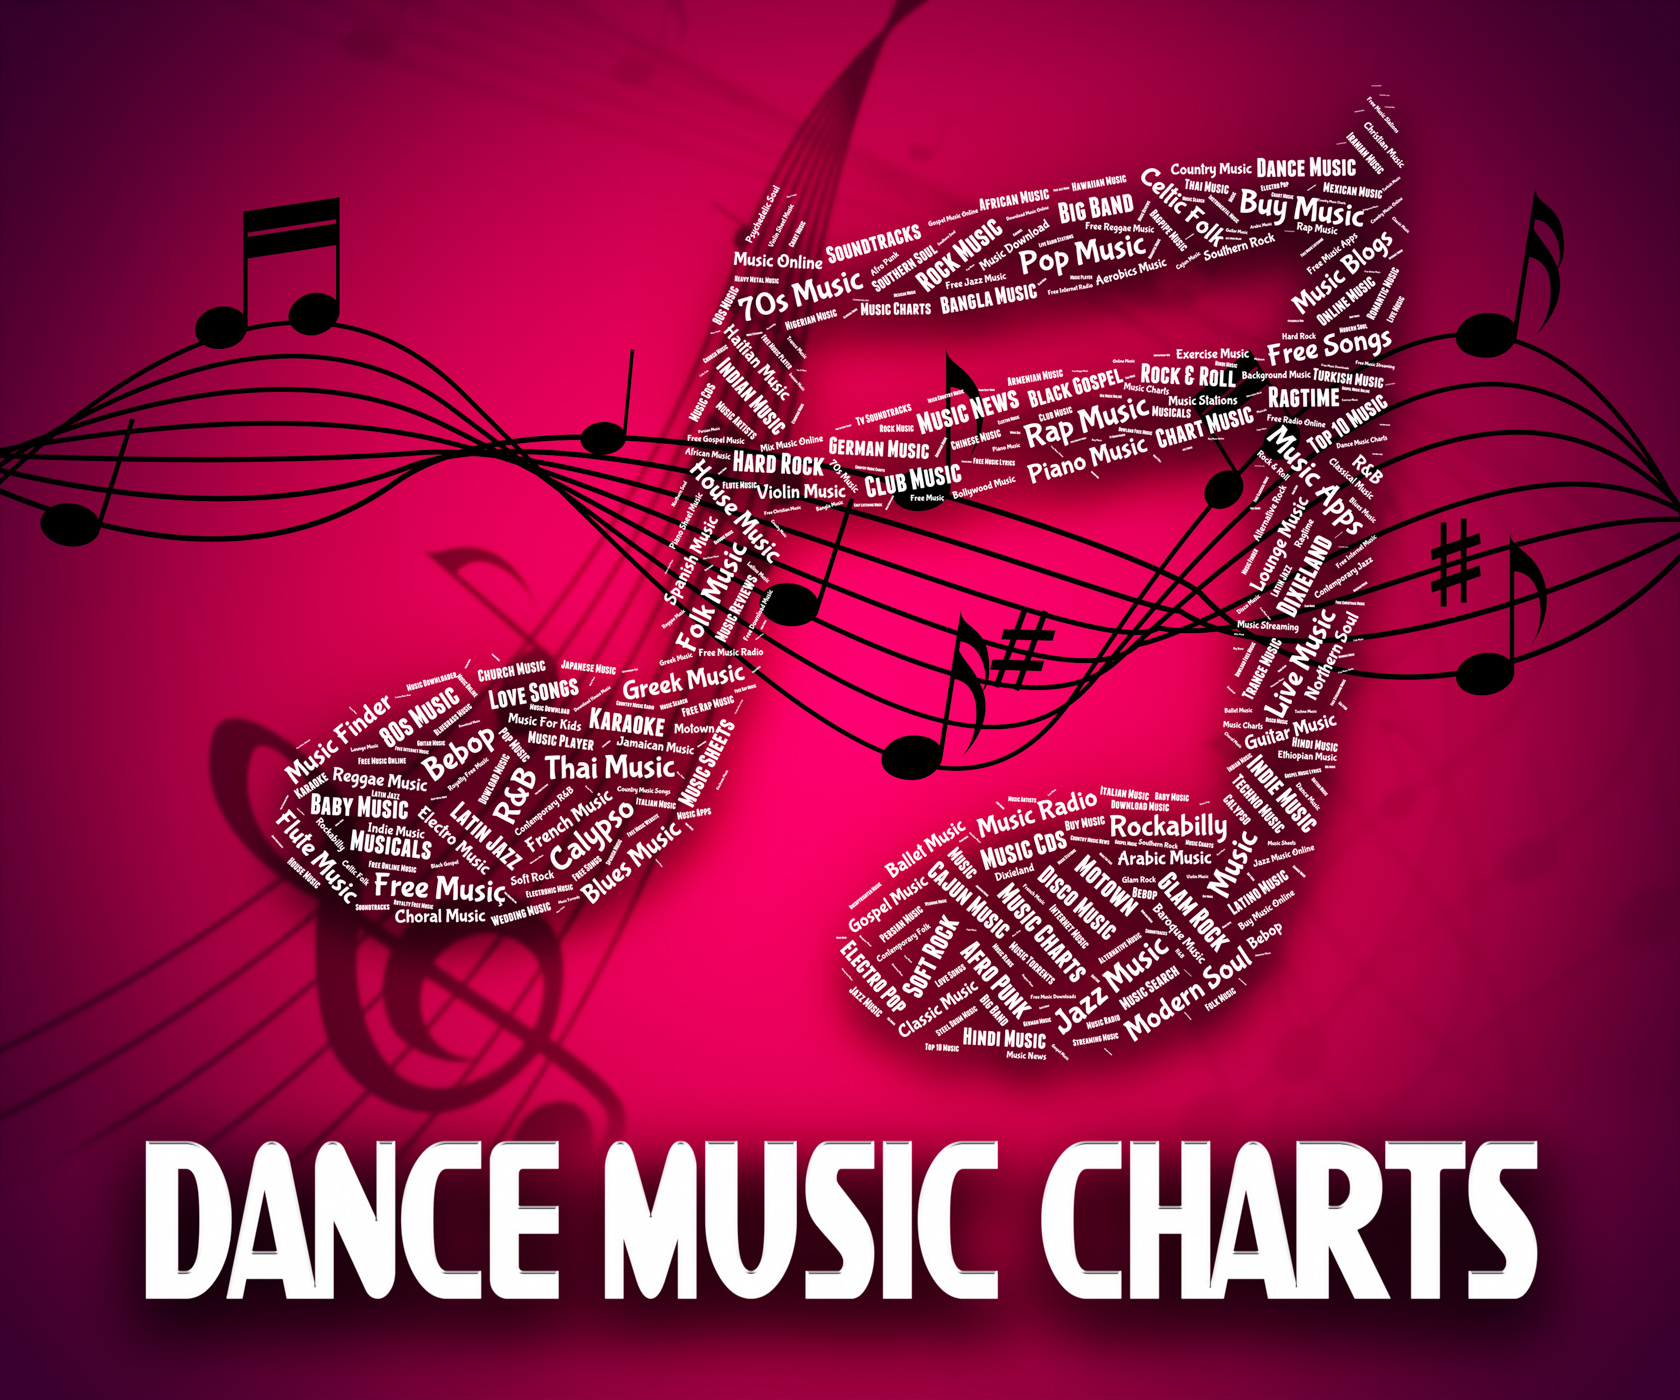 Dance music charts means hit parade and disco photo